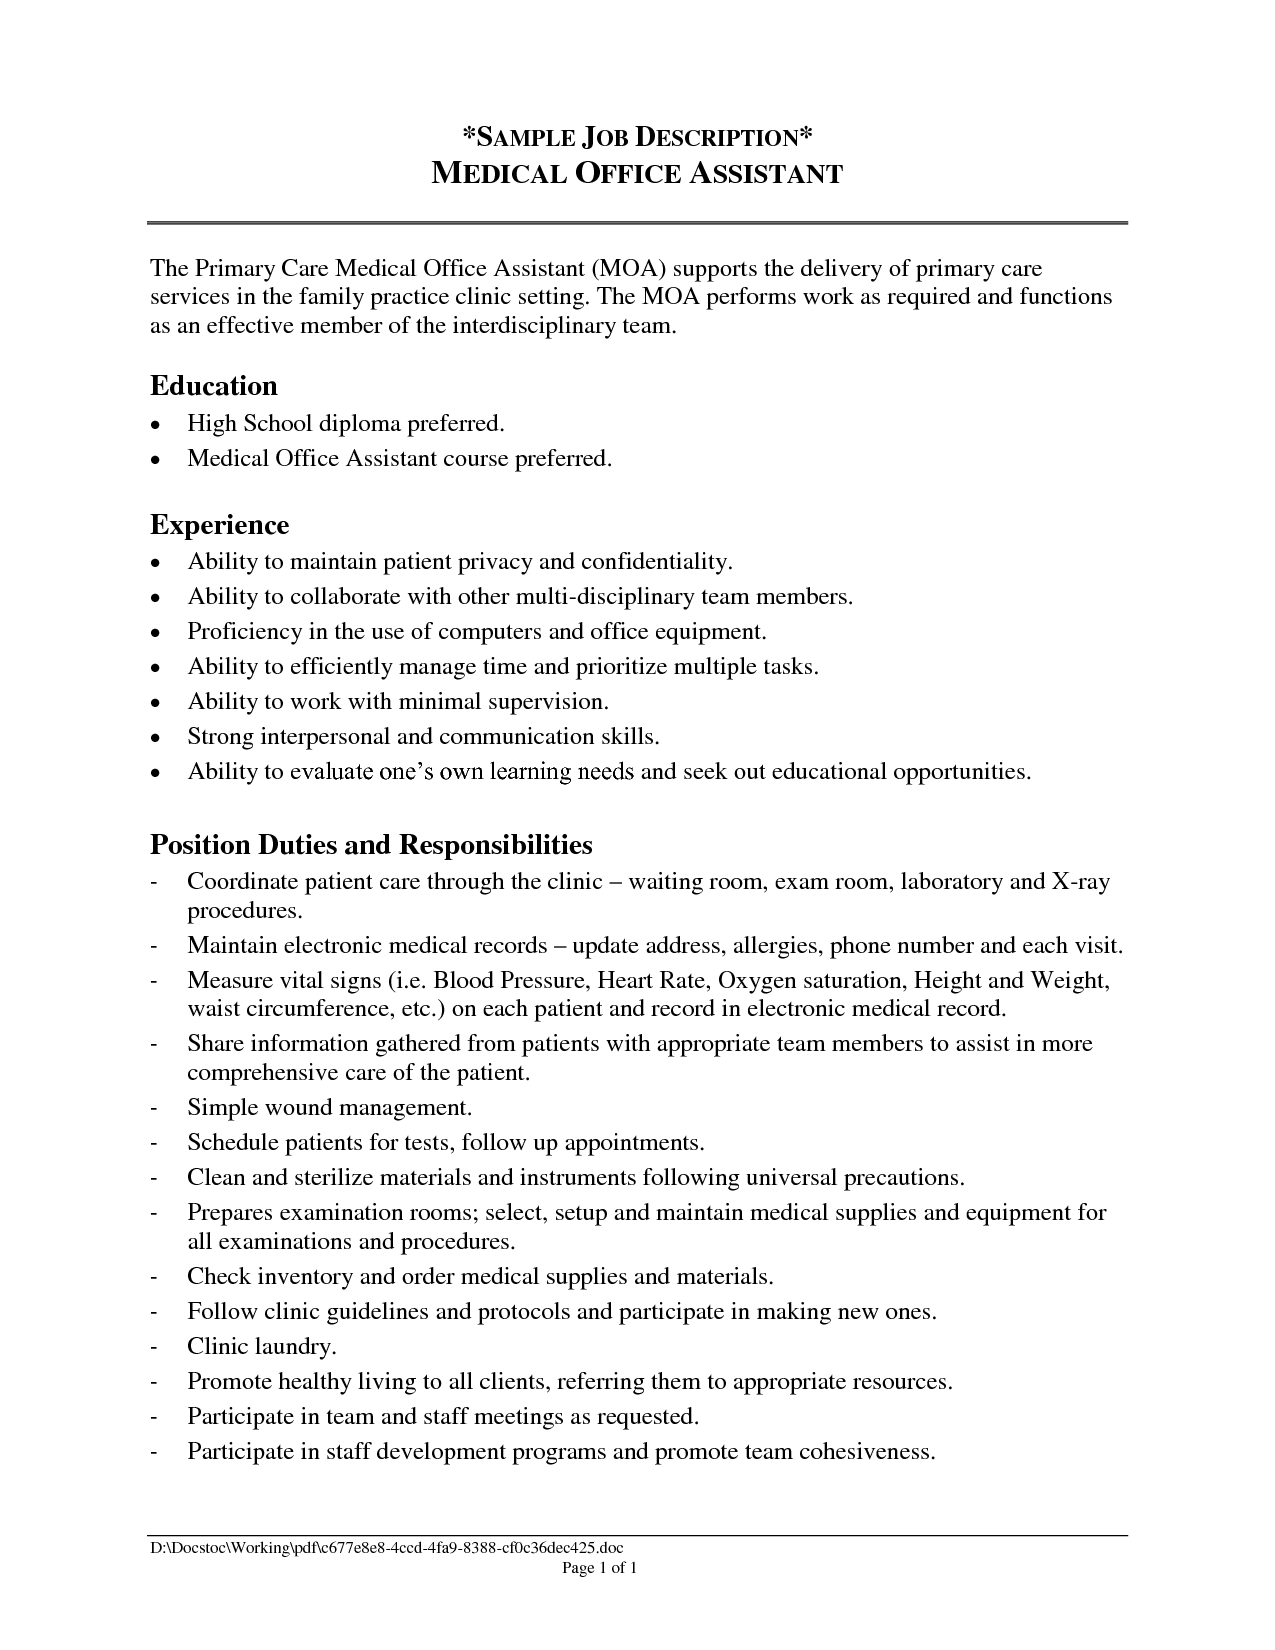 medical assistant description for resume